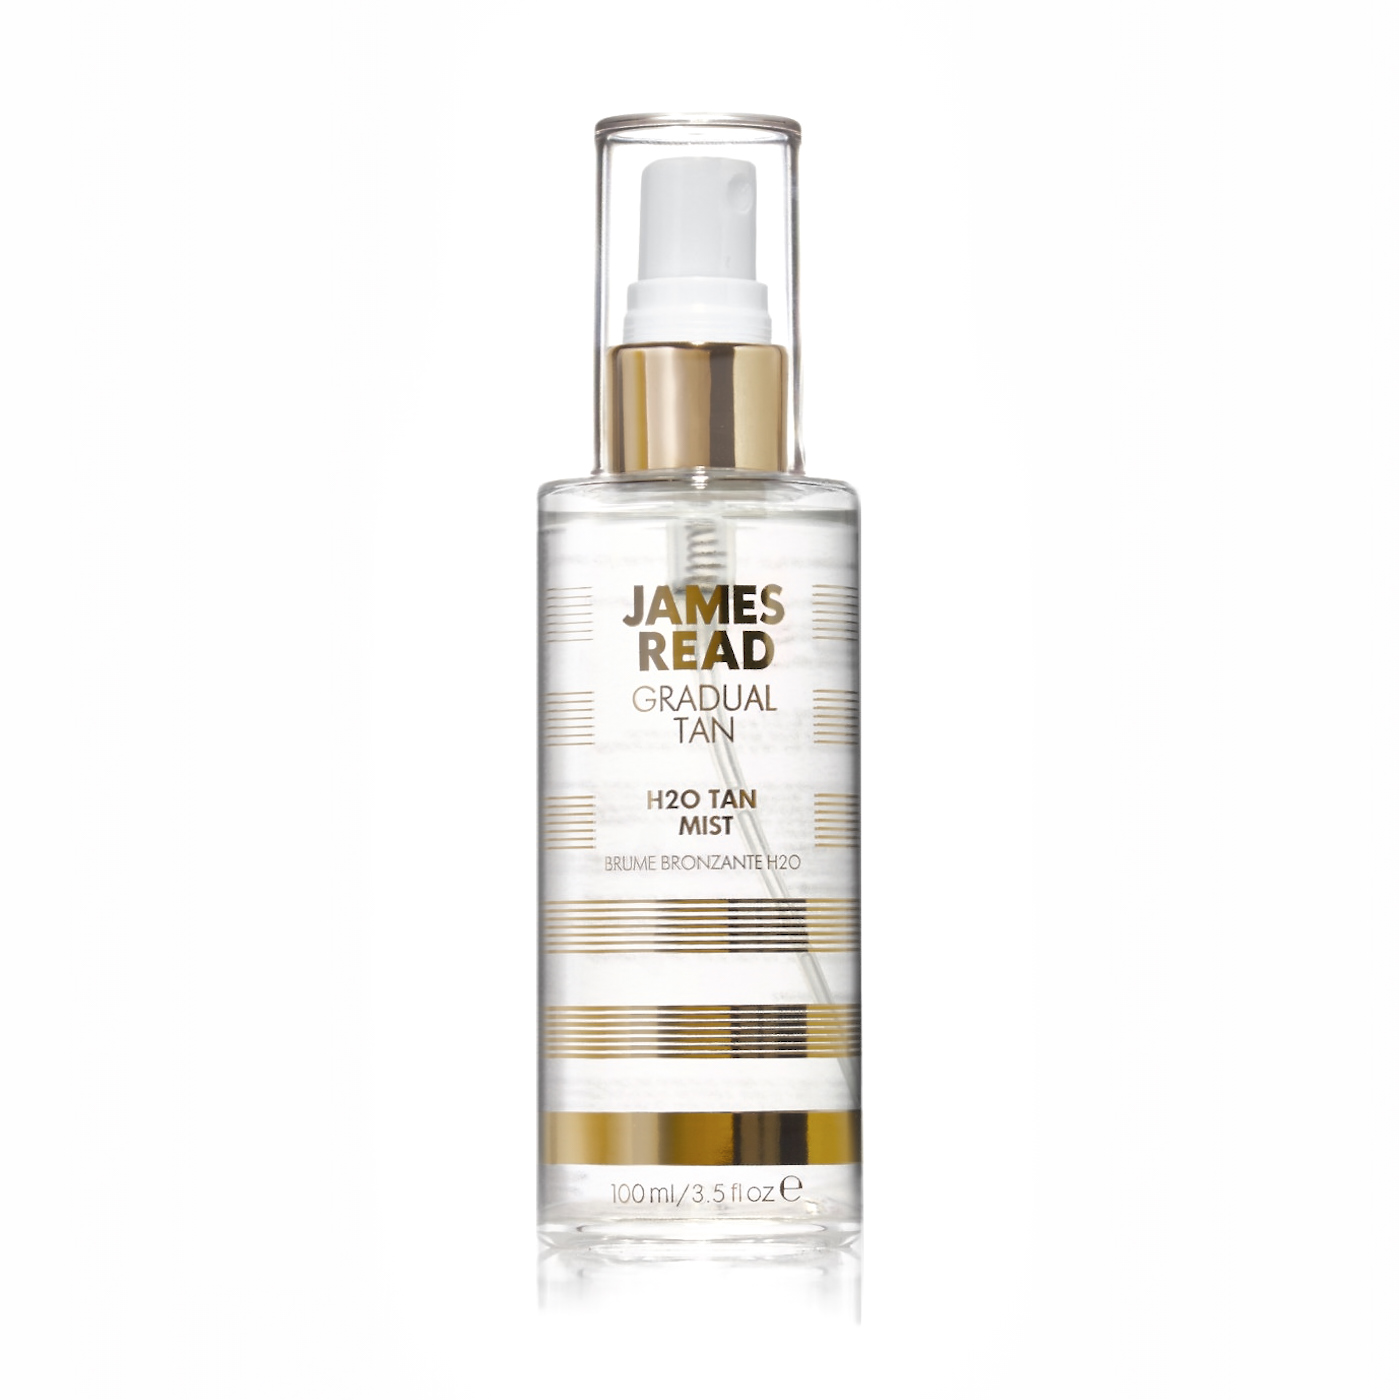 James Read Gradual Tan, one of the best multitasking beauty products